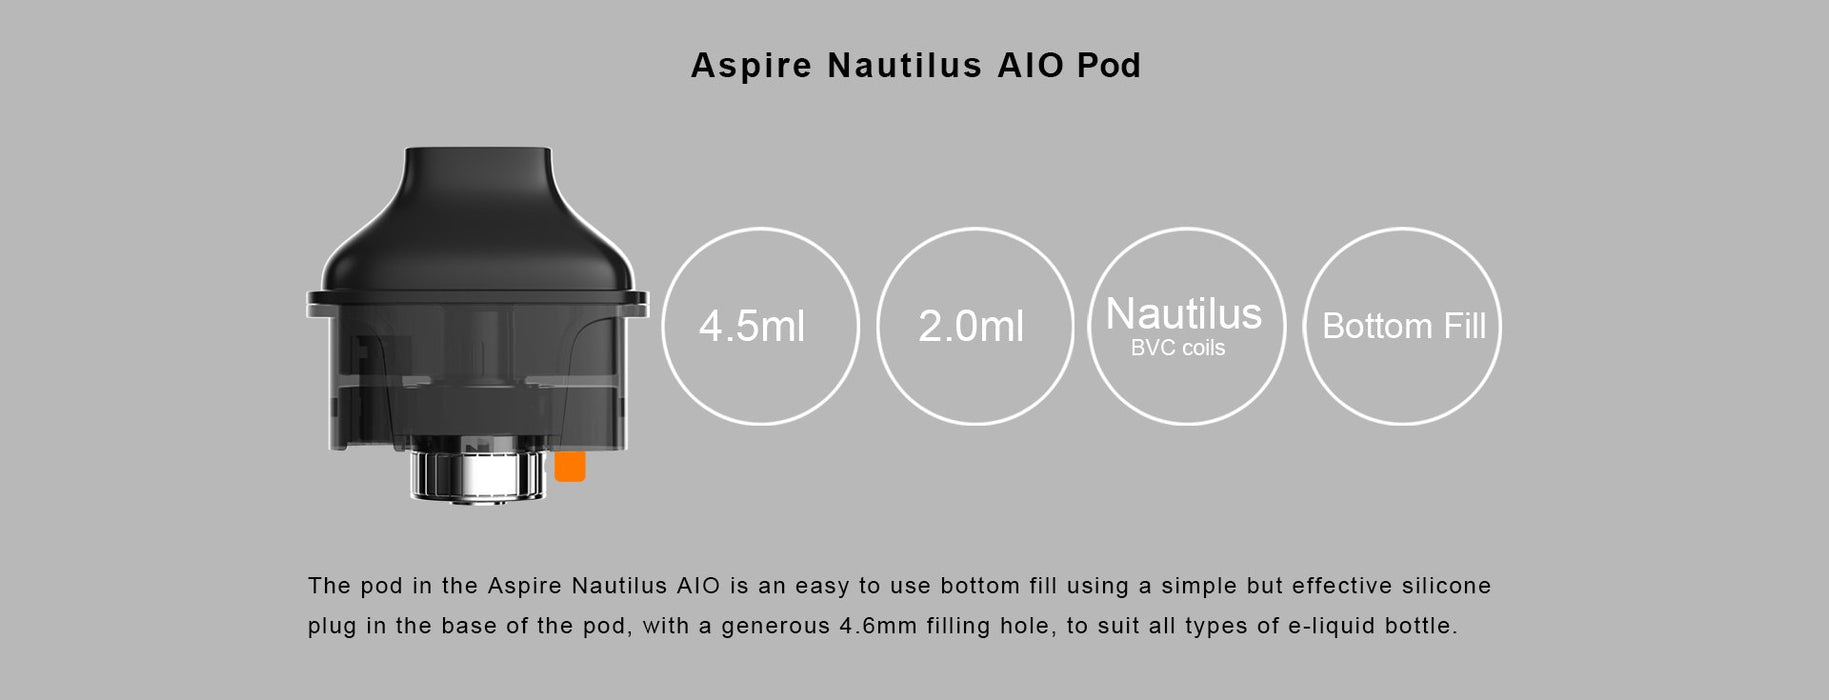 POD System - ASPIRE NAUTILUS AIO 4.5ML REFILLABLE REPLACEMENT POD